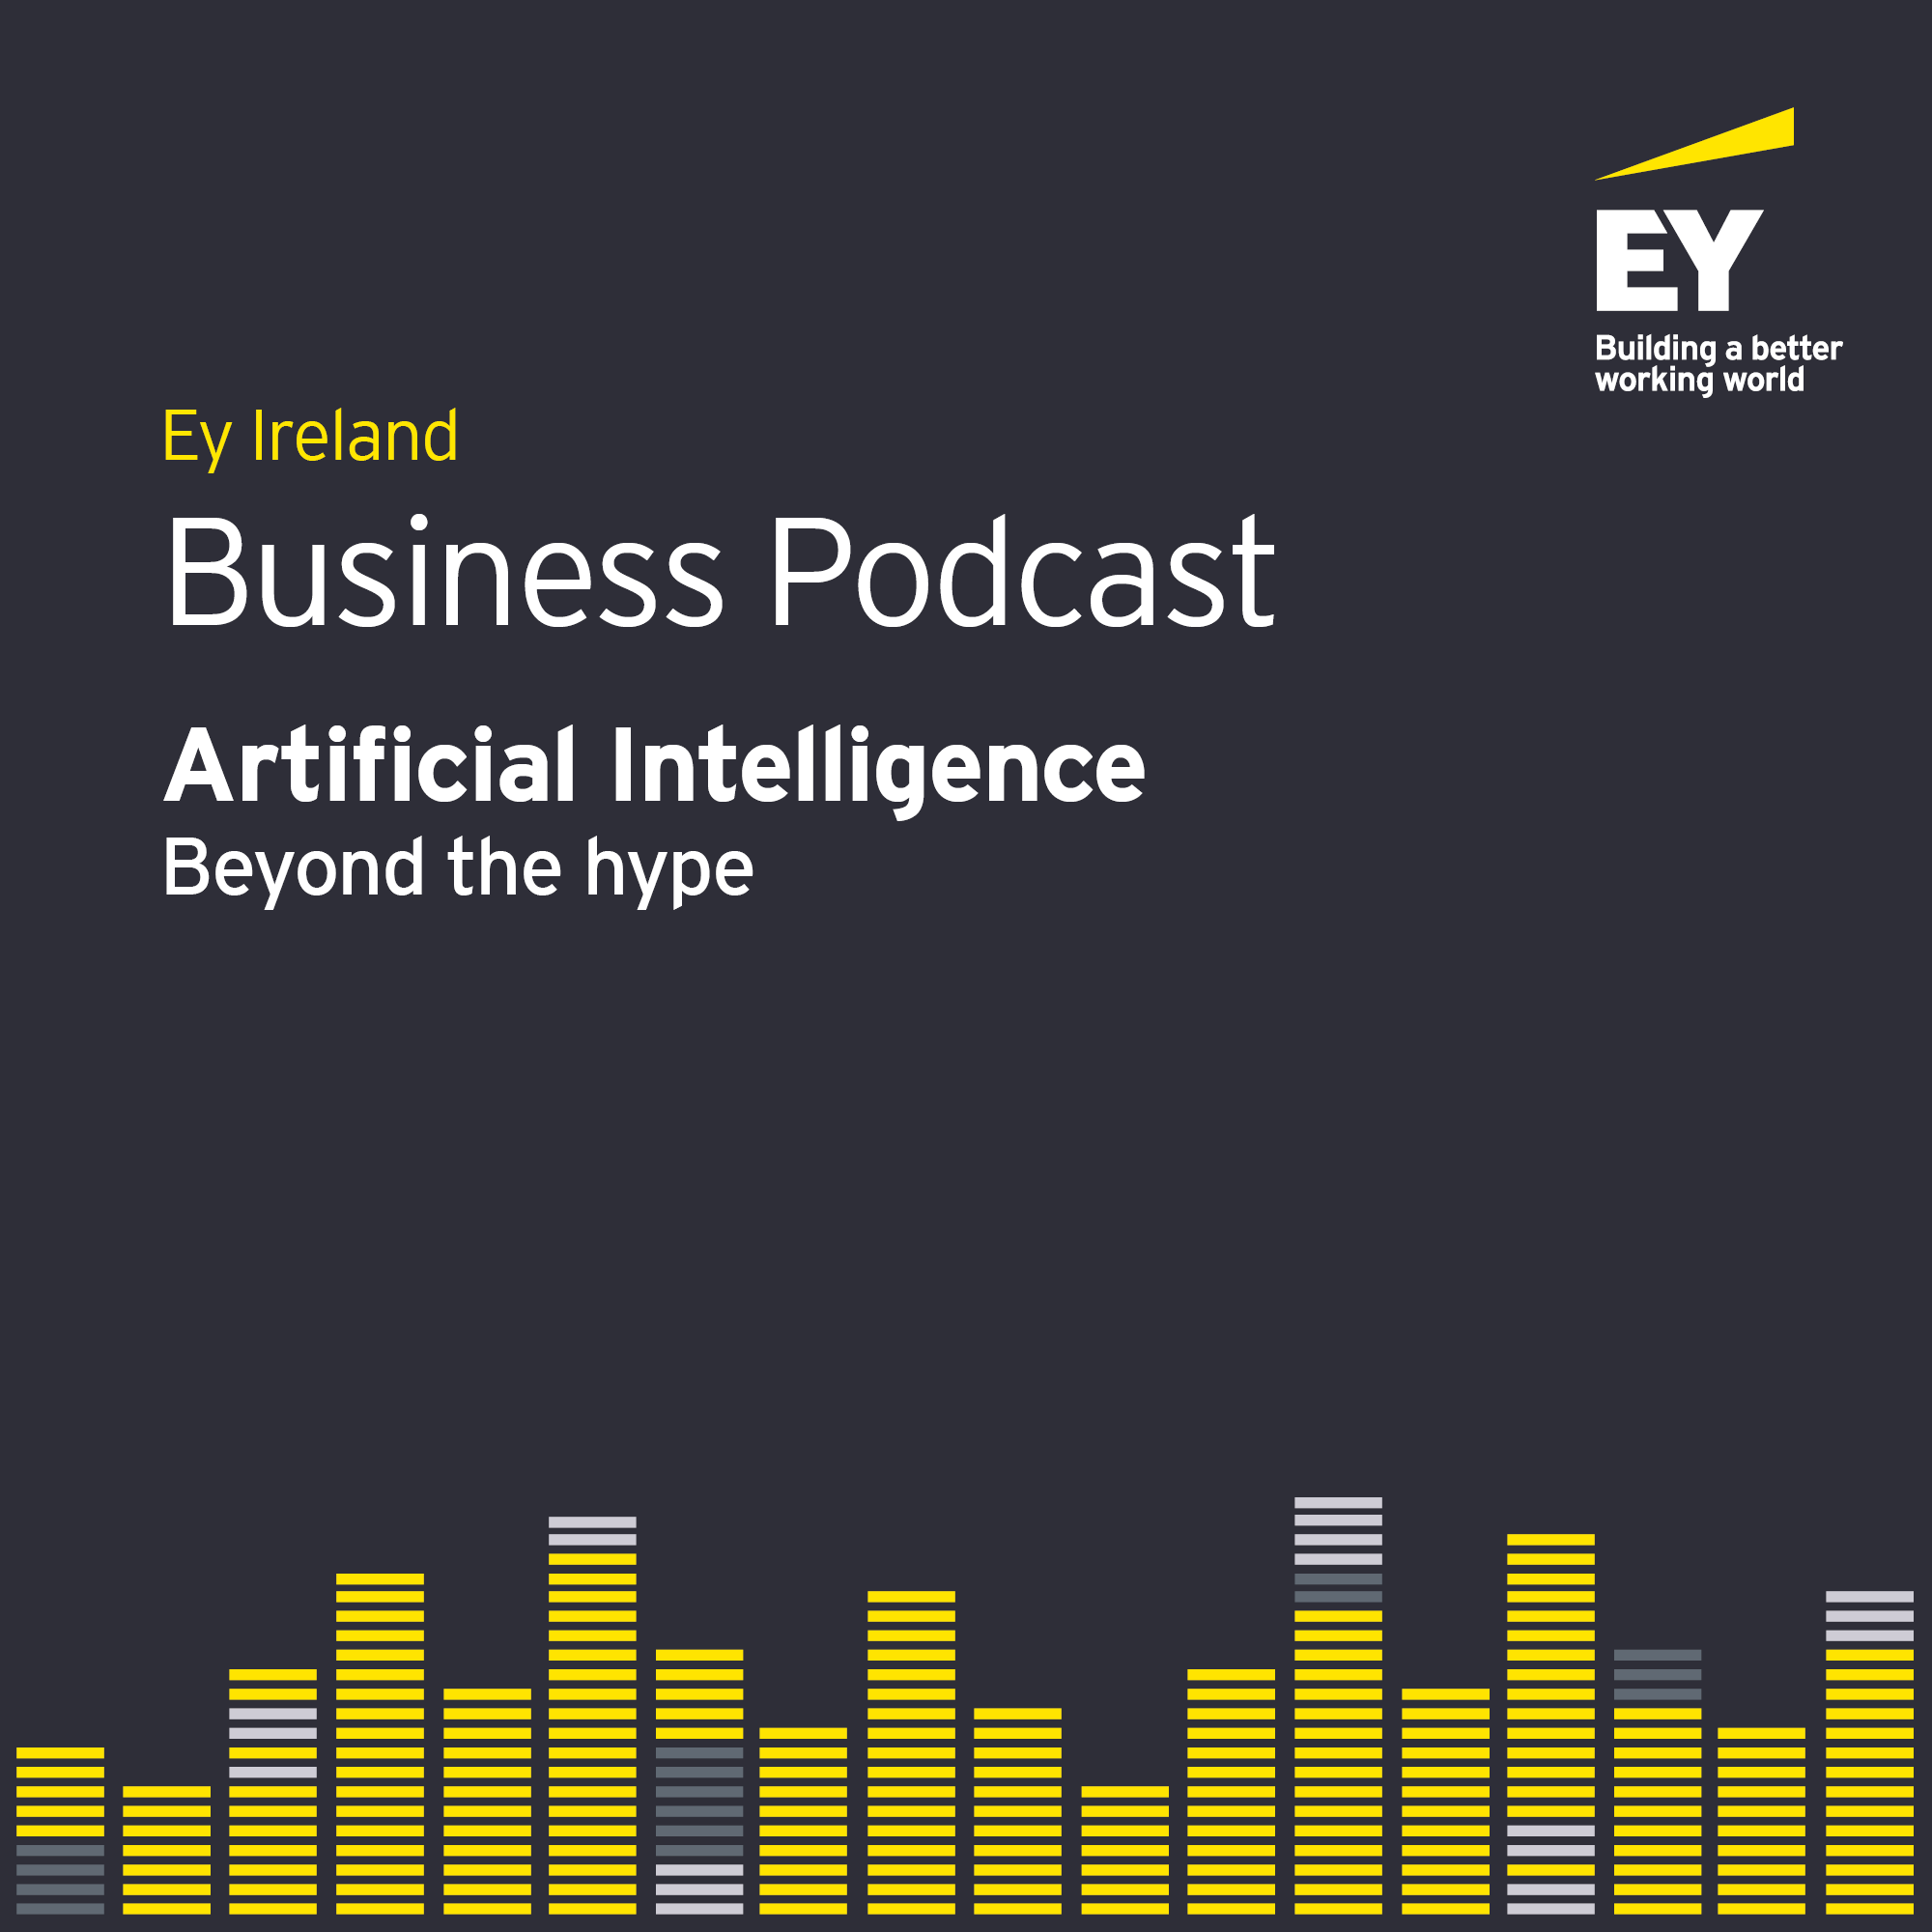 Artificial Intelligence - Beyond the hype